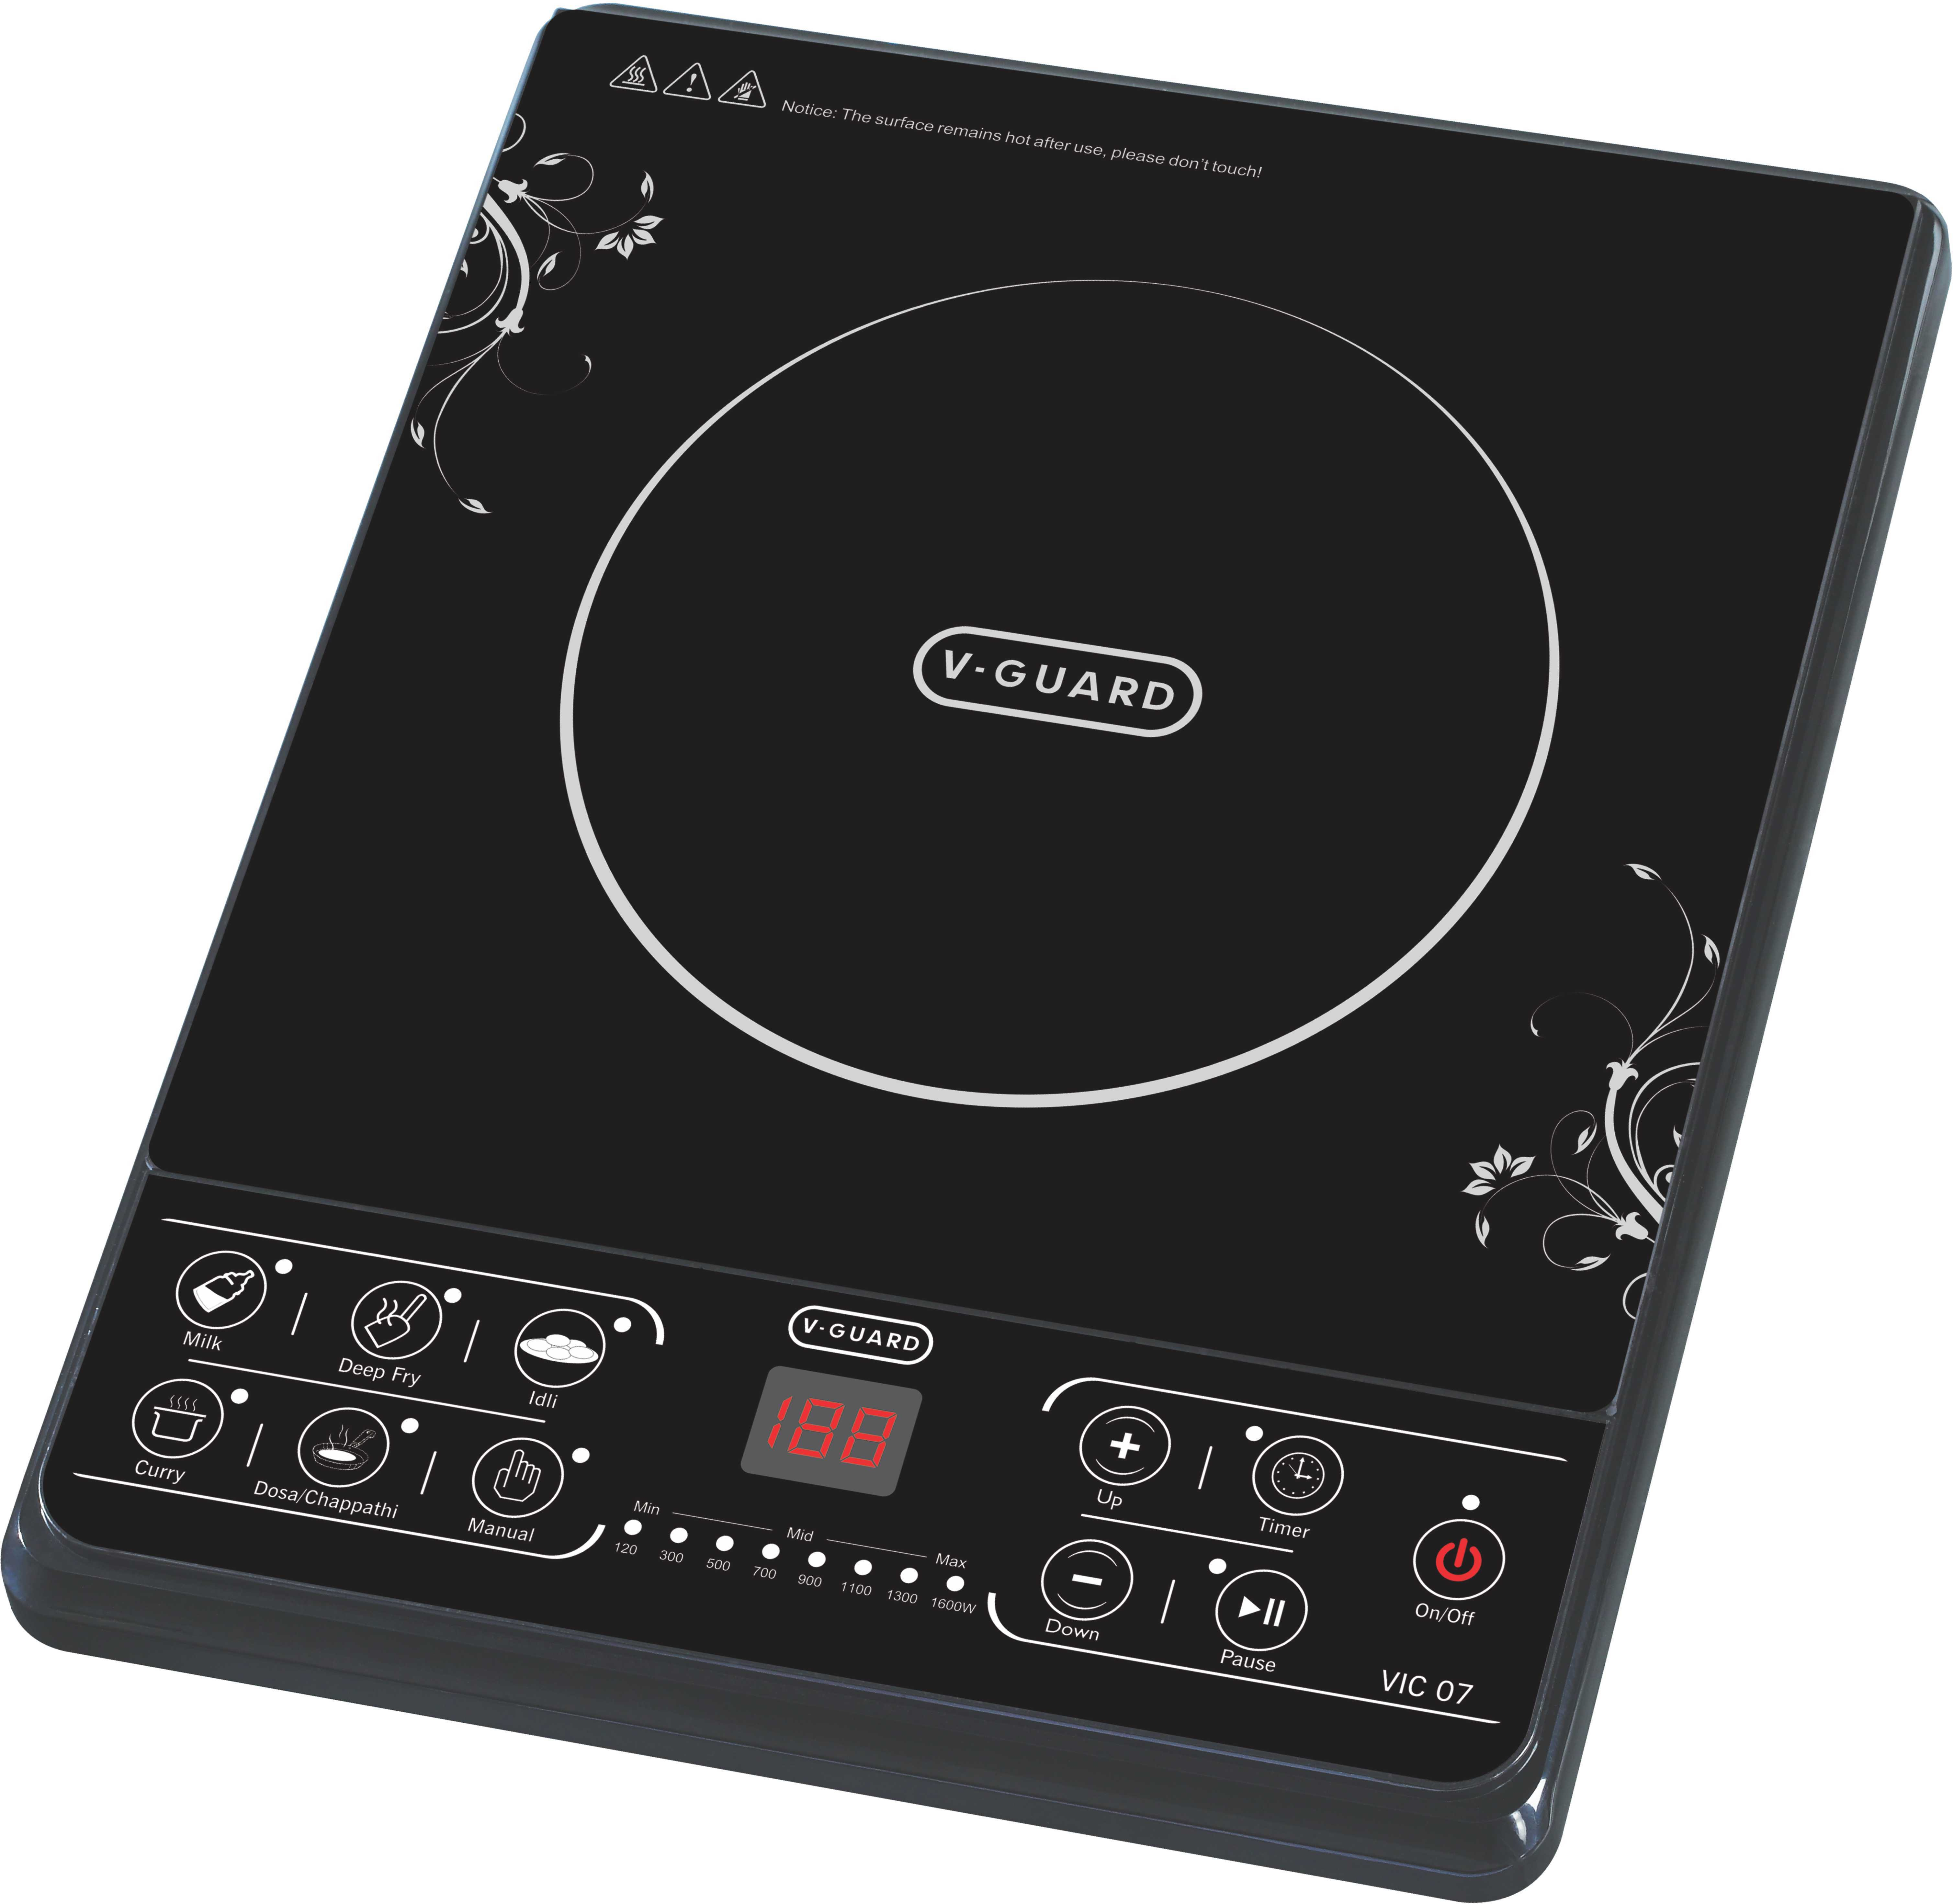 V Guard VIC 07 Induction Cooktop(Black, Push Button)